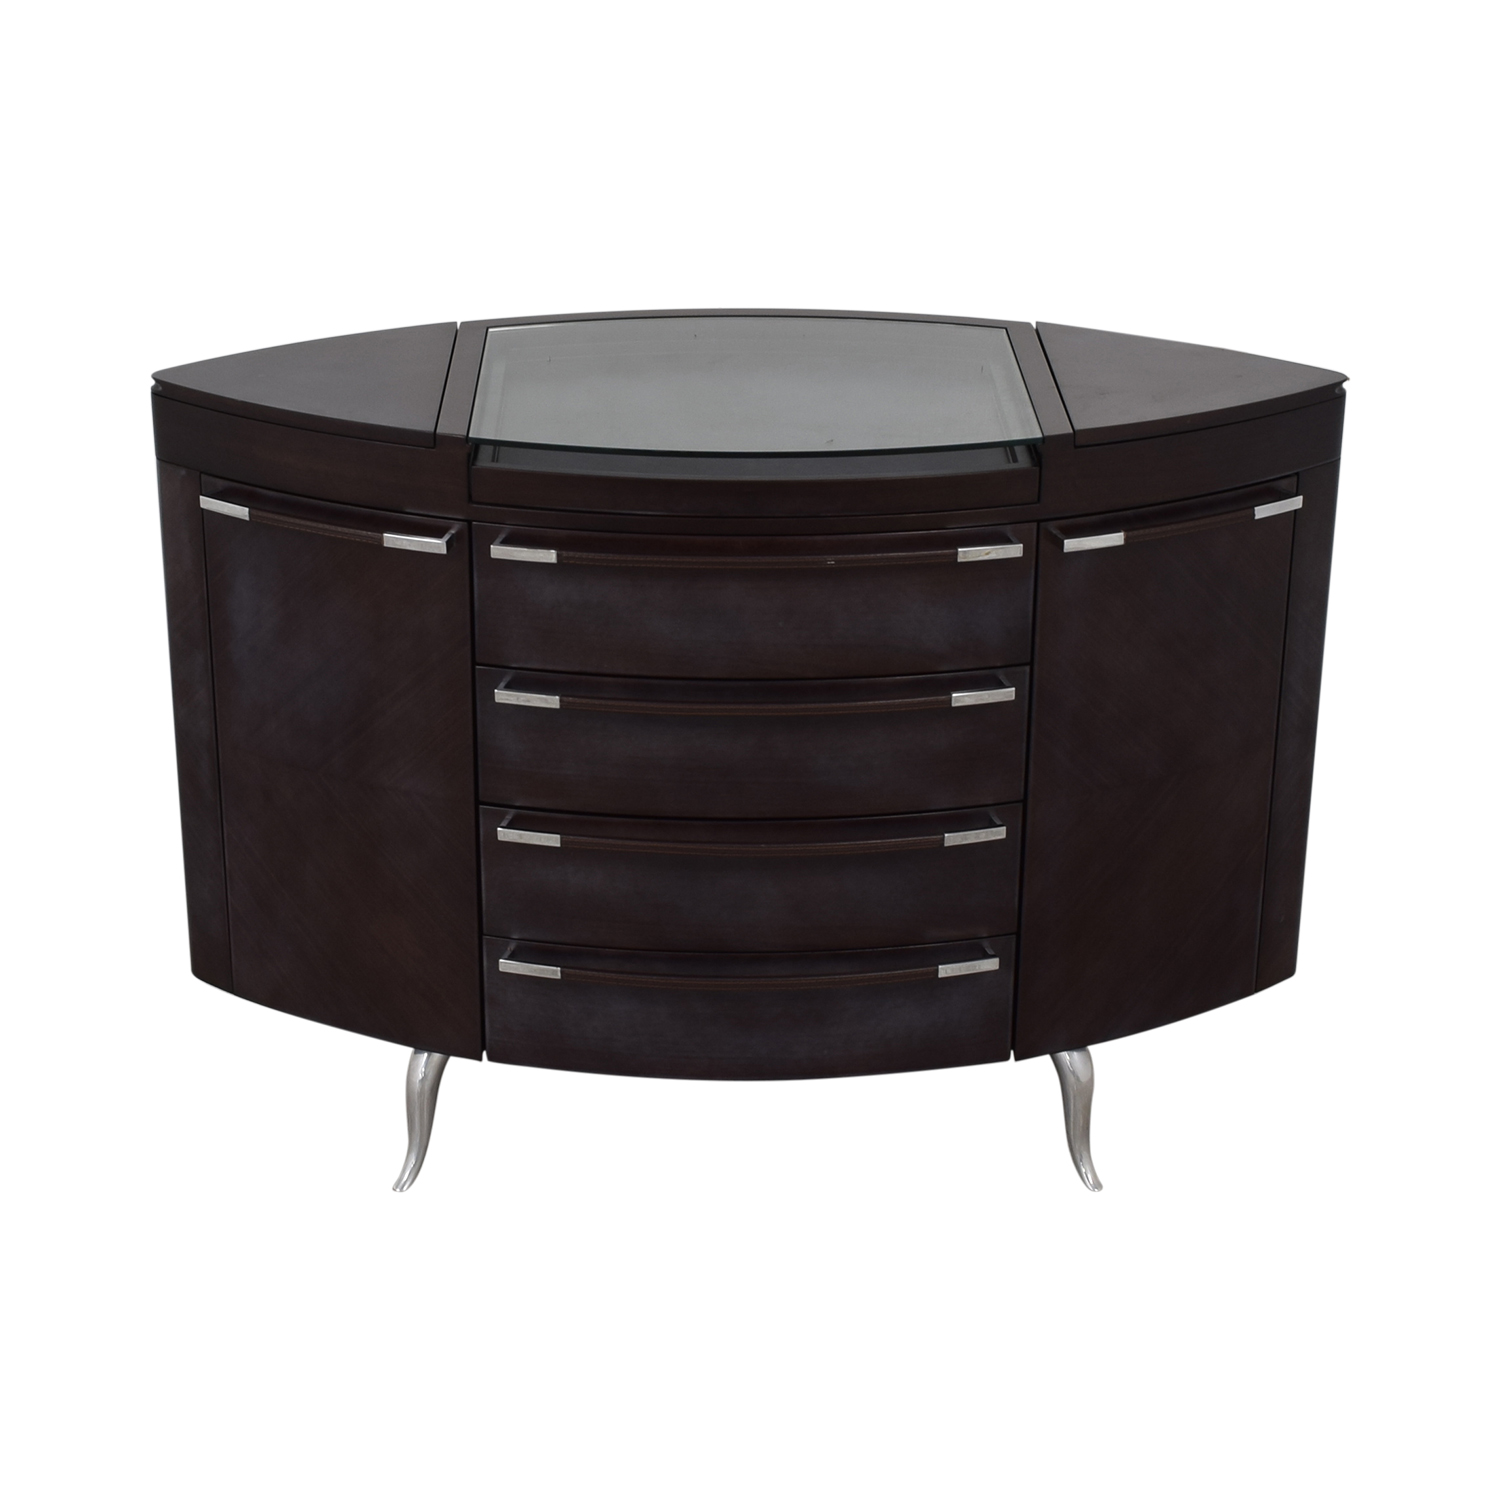 Maurice Villency Oval Elliptical Chest of Drawers / Storage